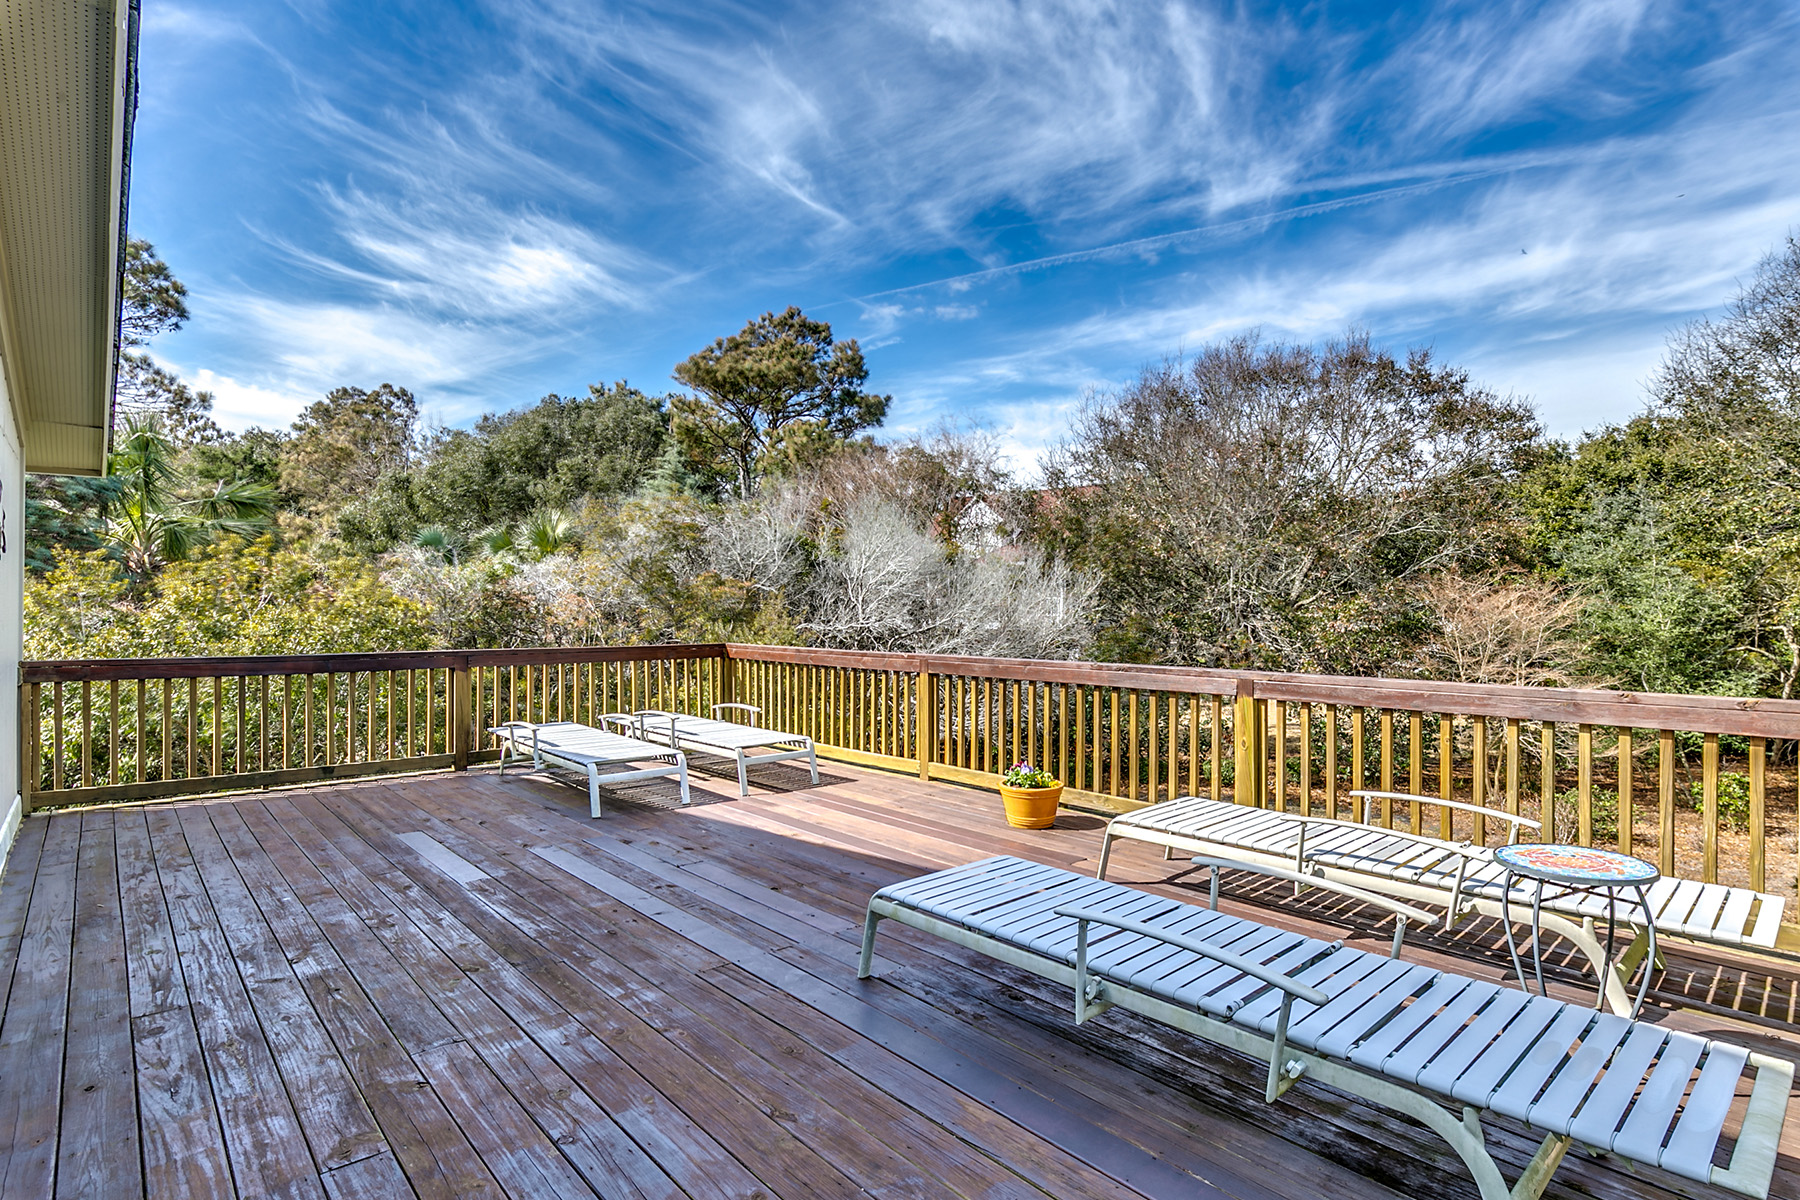 Additional photo for property listing at 833 Parker Drive, Pawleys Island, SC 29585 833  Parker Drive Pawleys Island, South Carolina 29585 United States